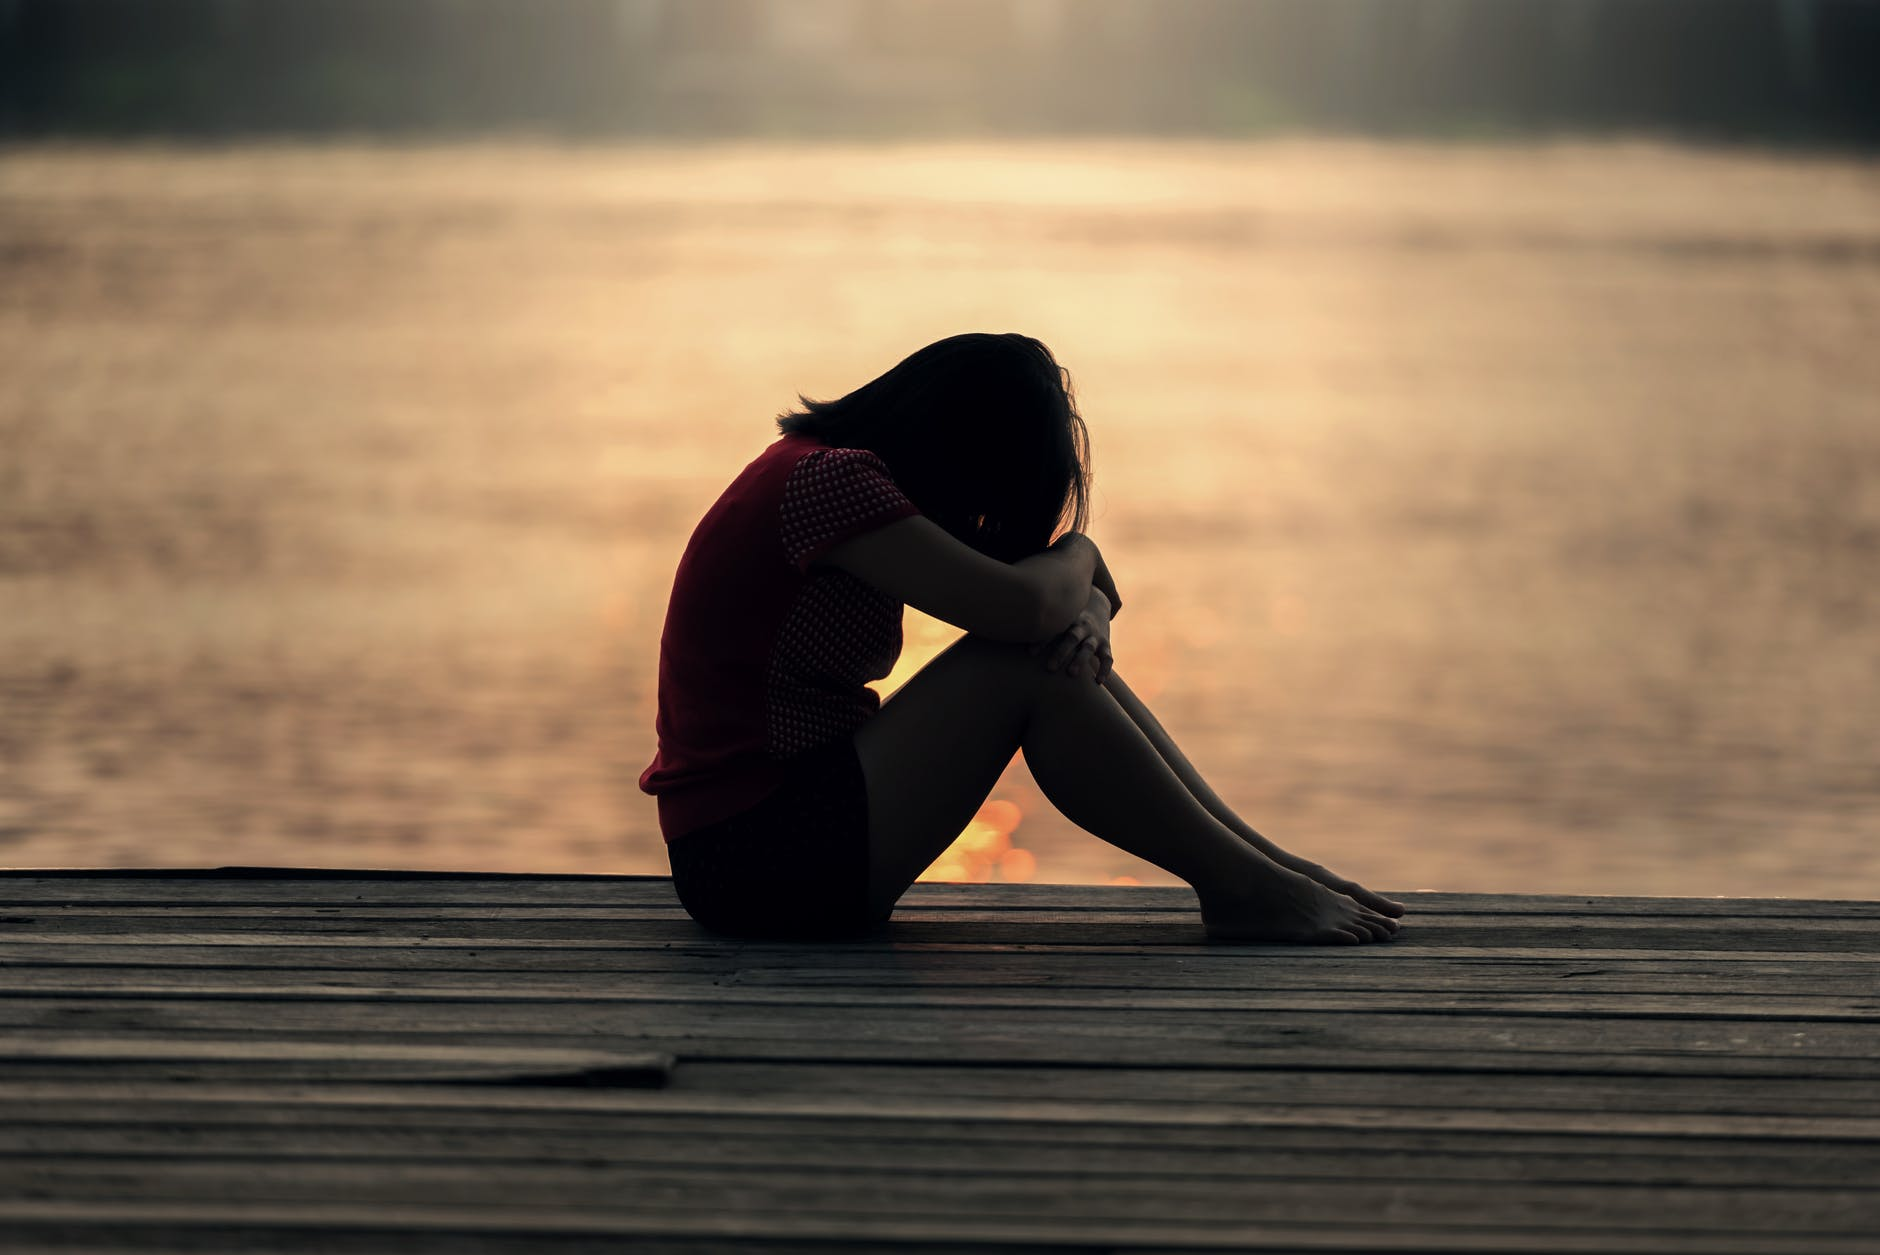 How to deal with emotional pain?